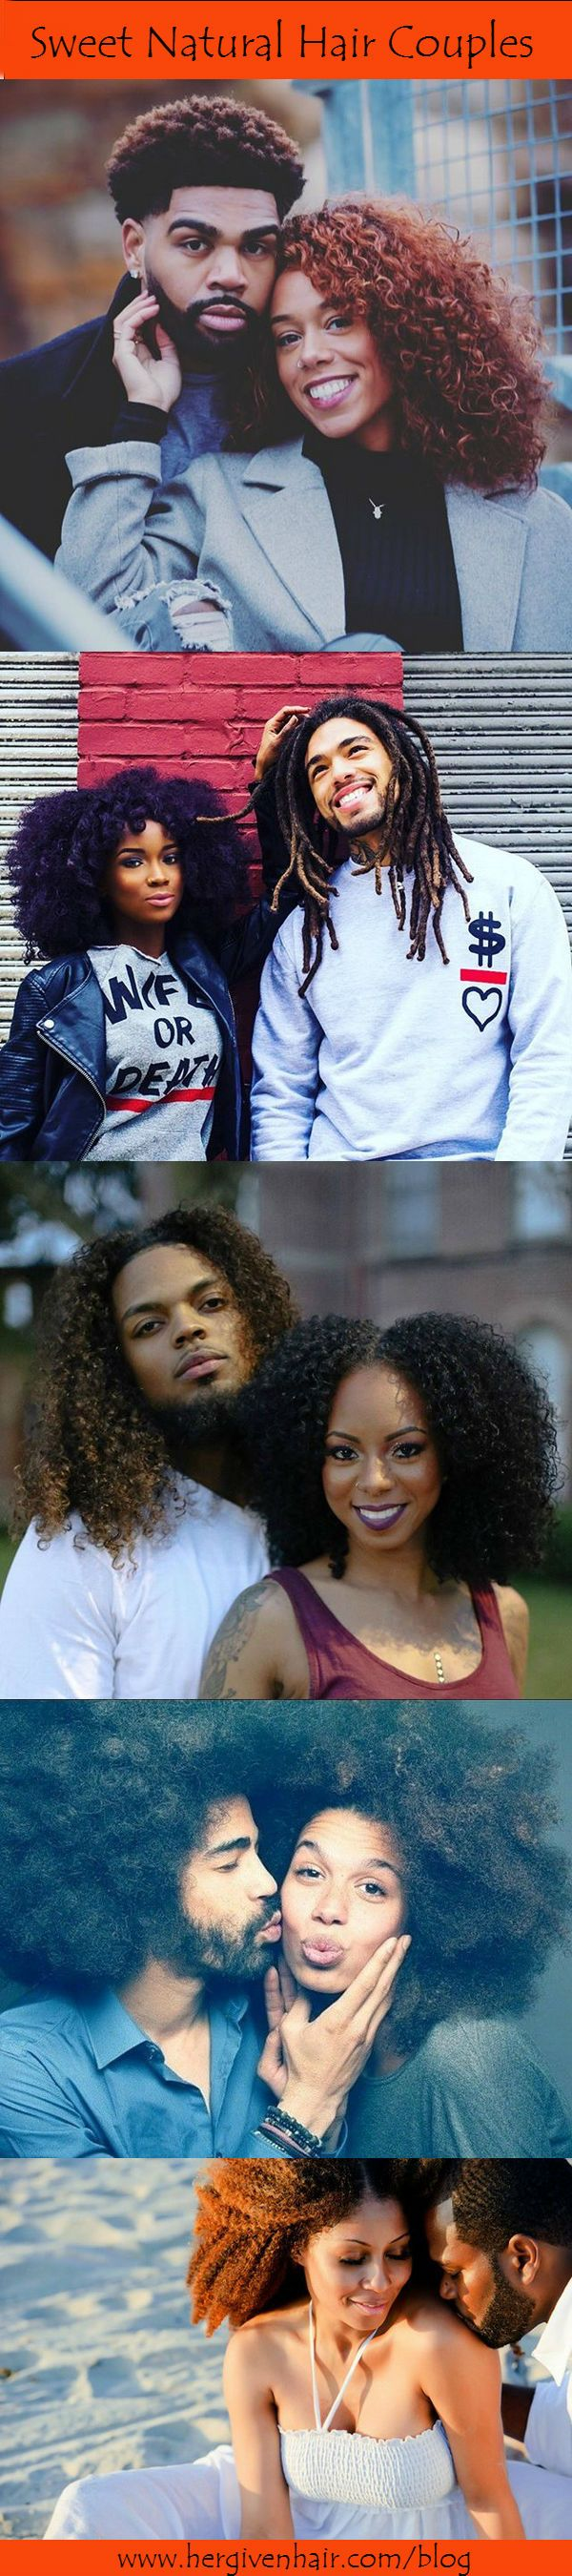 10 sweet natural hair couples on www.hergivenhair.com/blog #naturallove #blacklove